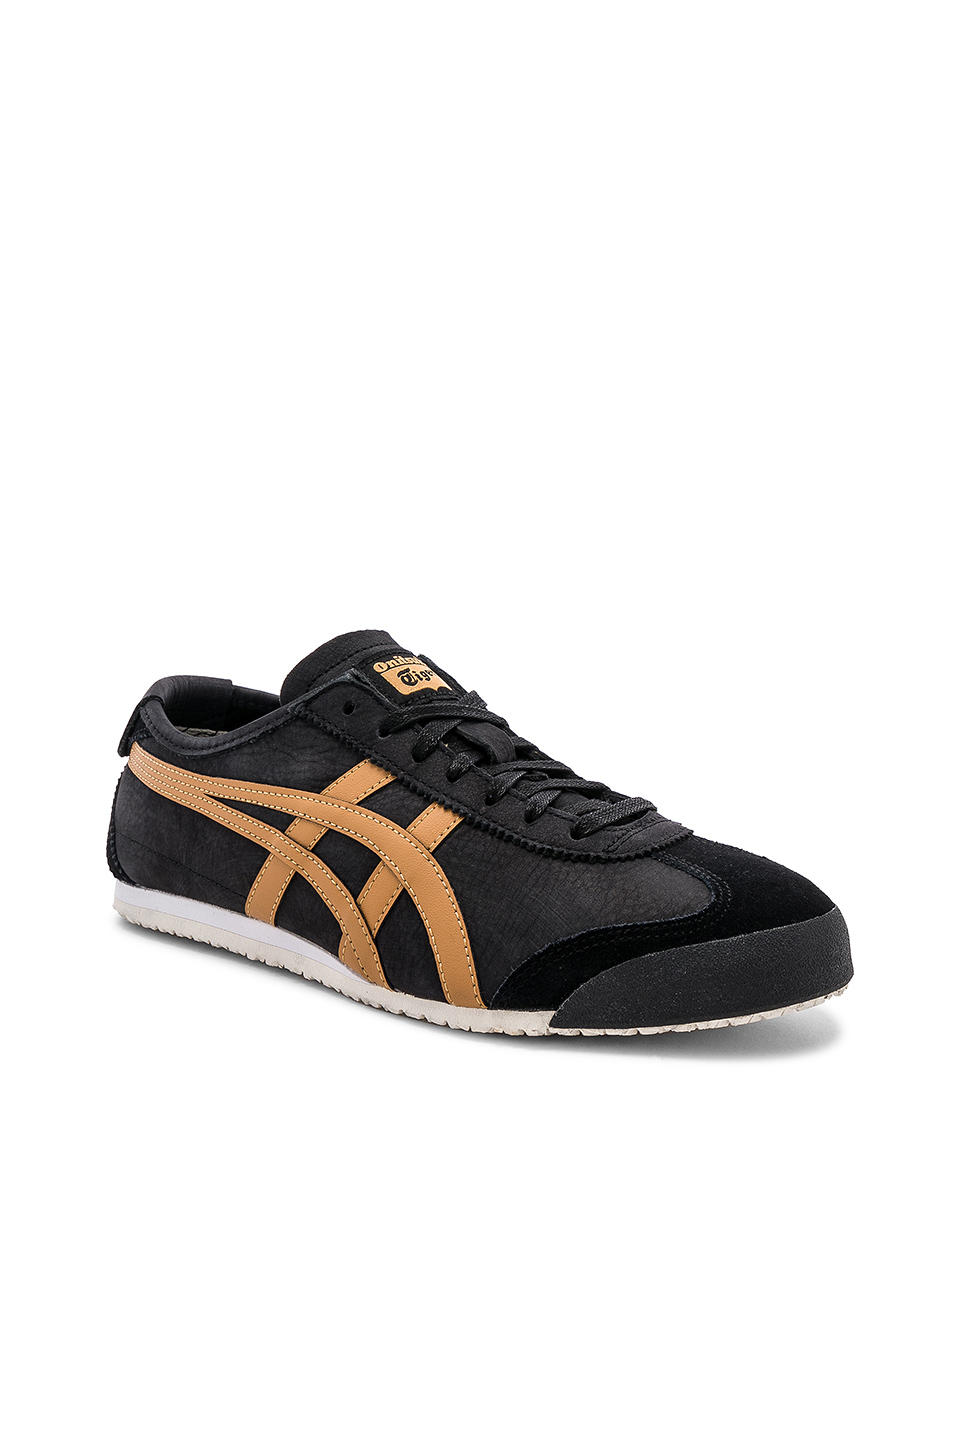 huge selection of 4fd69 8f35c Mexico 66, Onitsuka Tiger